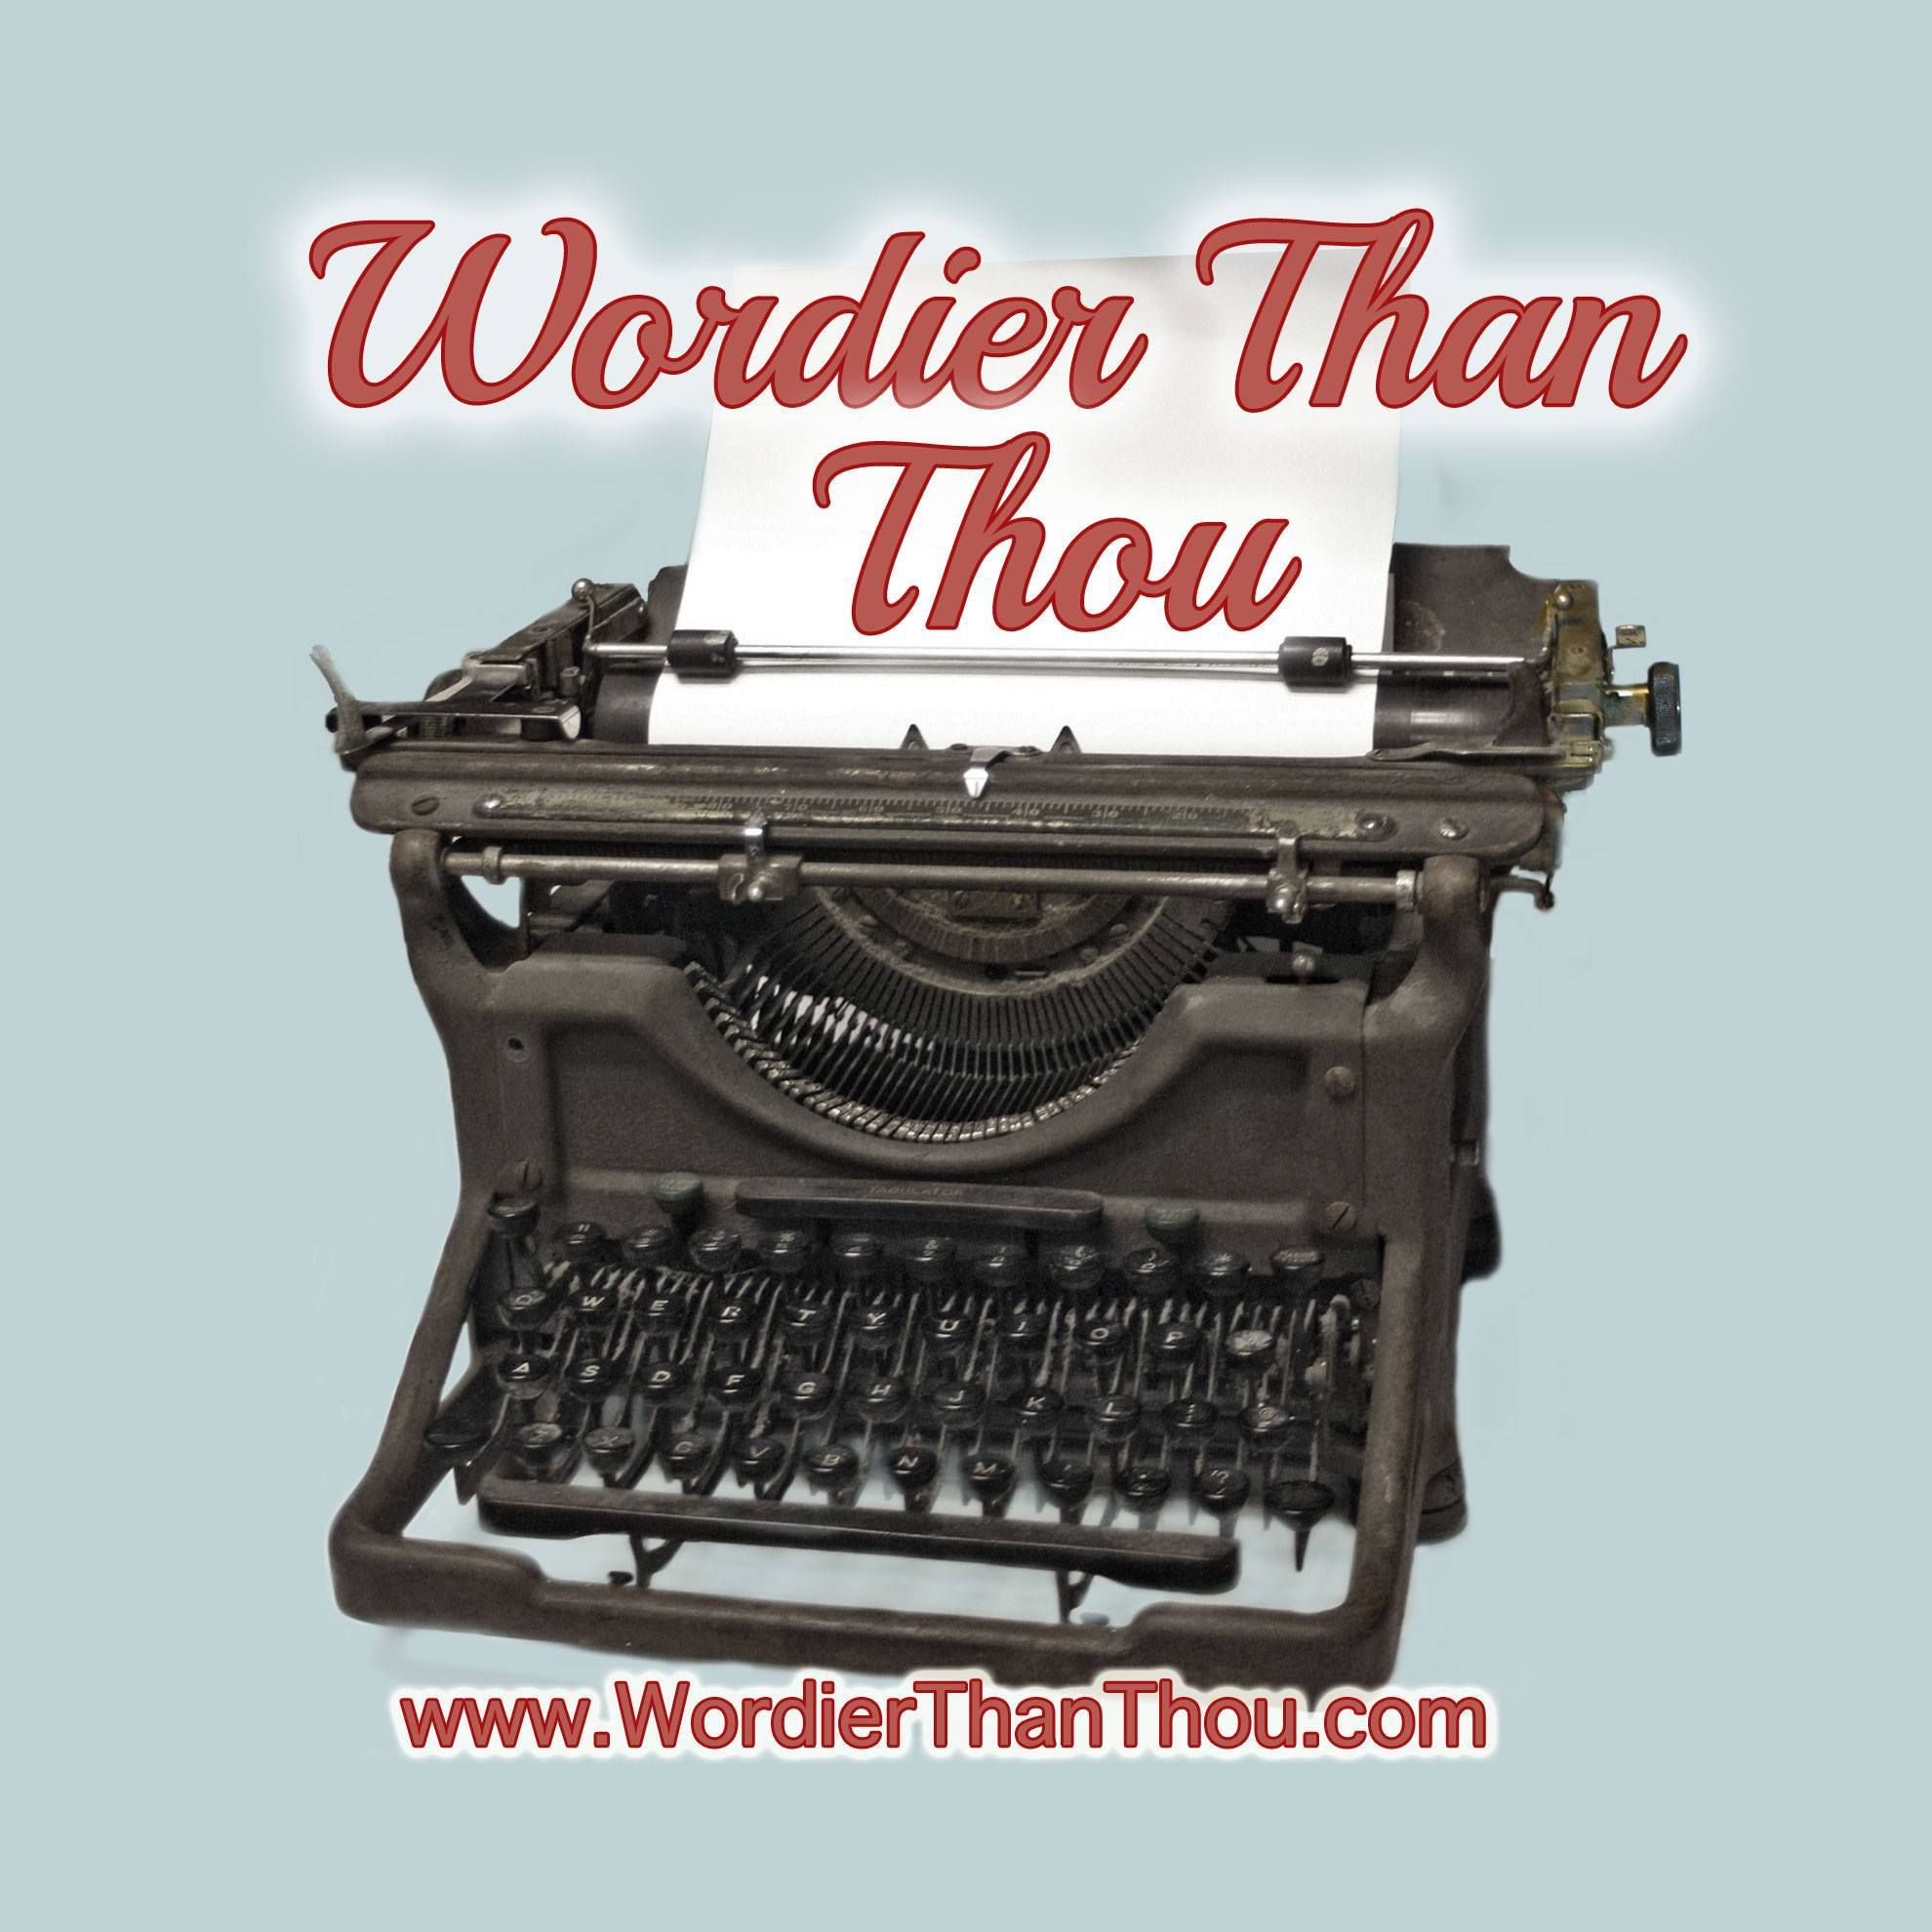 Wordier Than Thou Meetup for Writers and Book Lovers